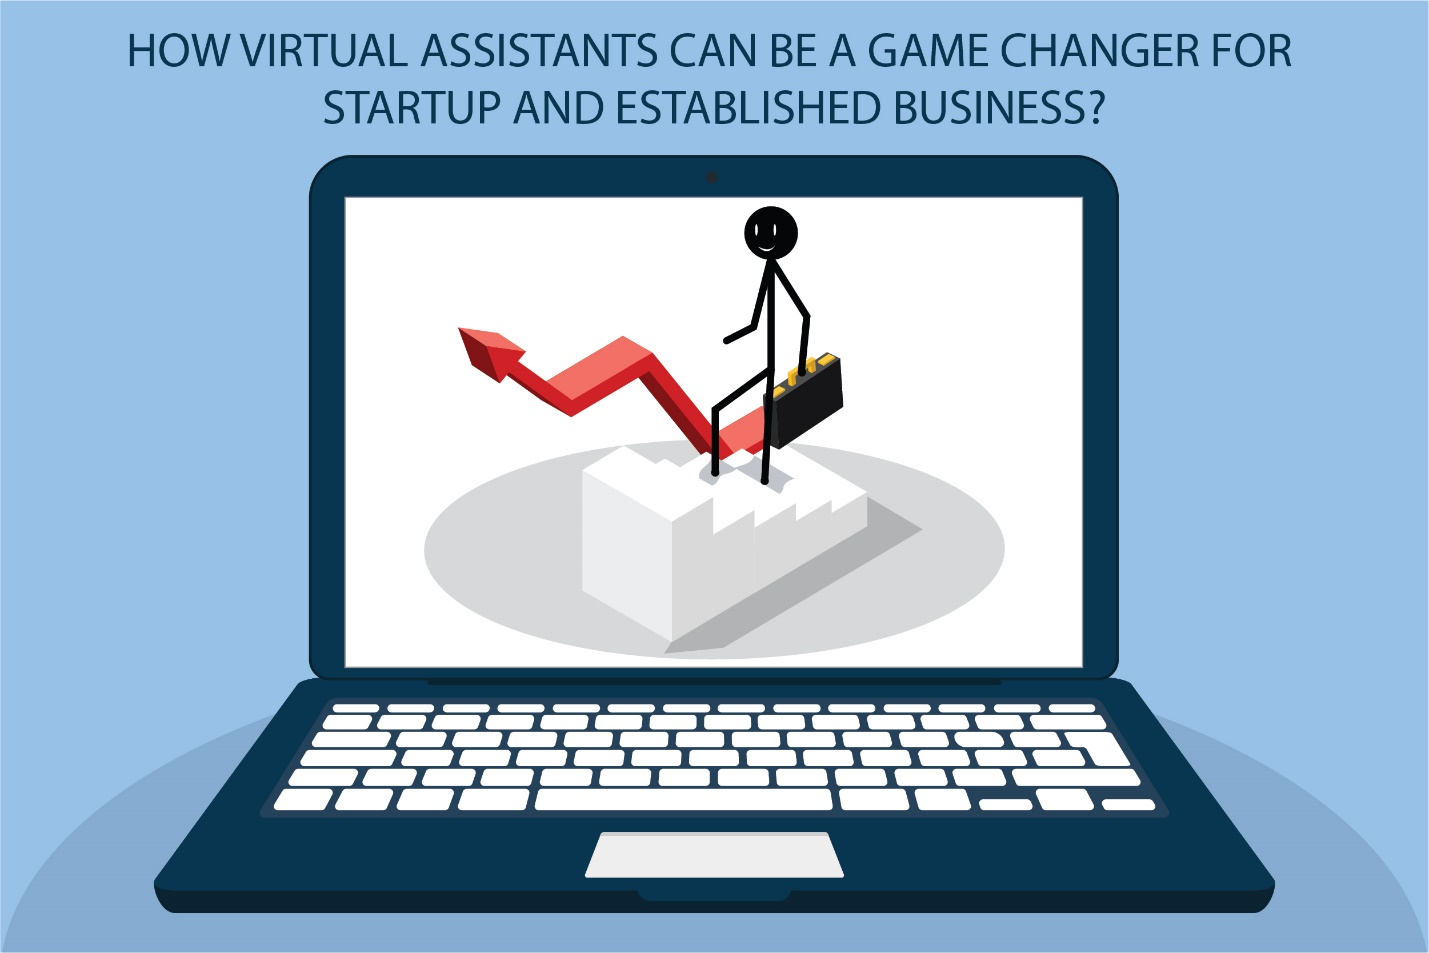 HOW VIRTUAL ASSISTANTS CAN BE A GAME CHANGER FOR STARTUP AND ESTABLISHED BUSINESS?